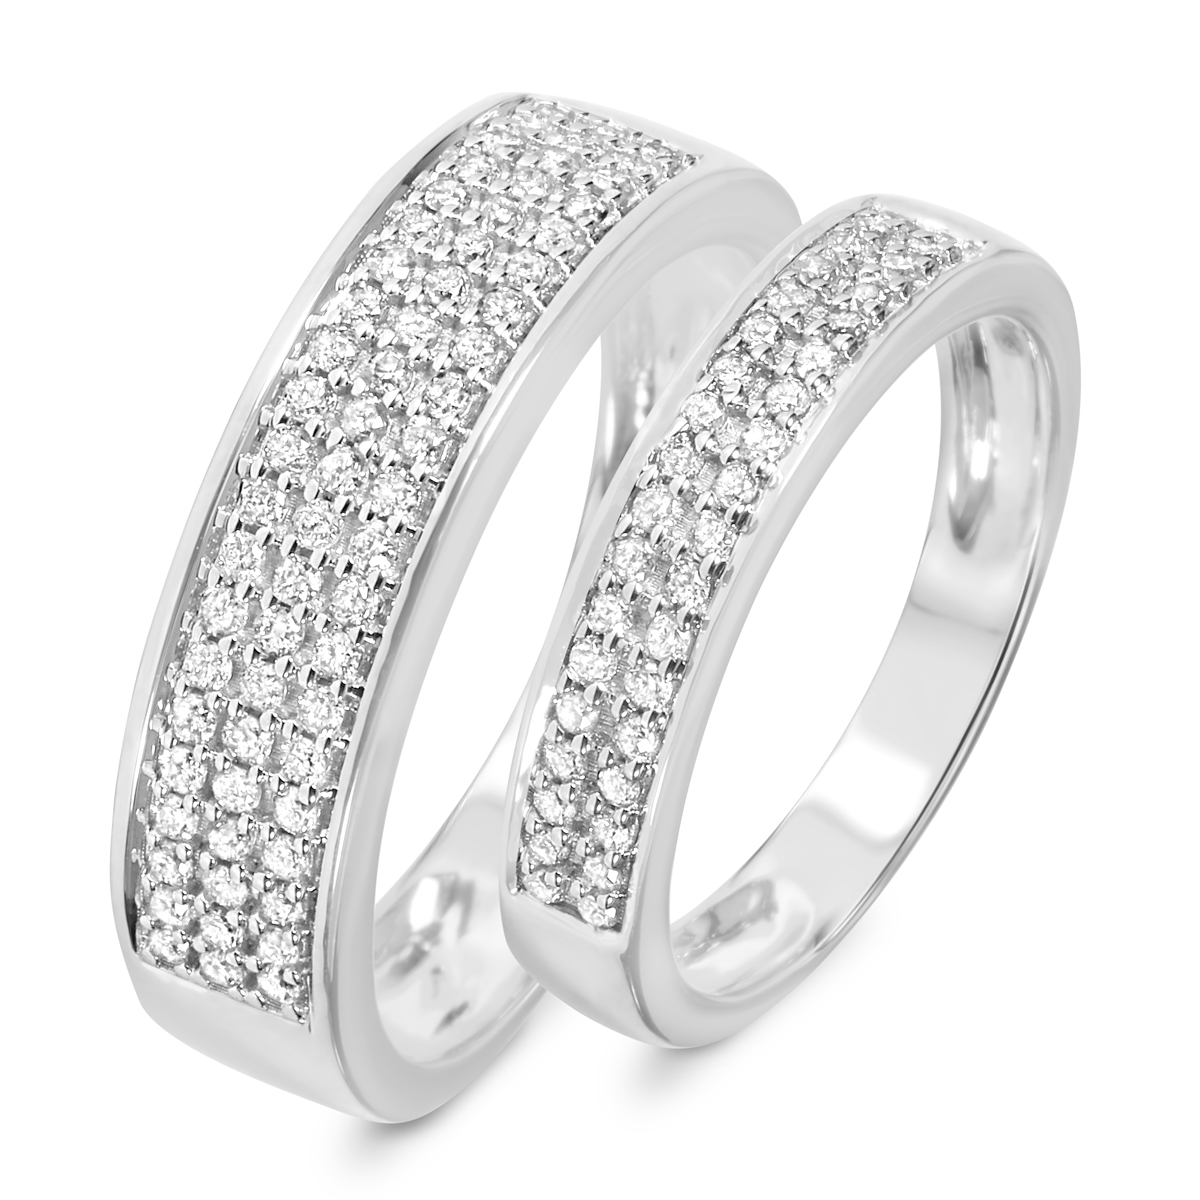 1/2 ct. t.w. diamond his and hers wedding rings 14k white gold